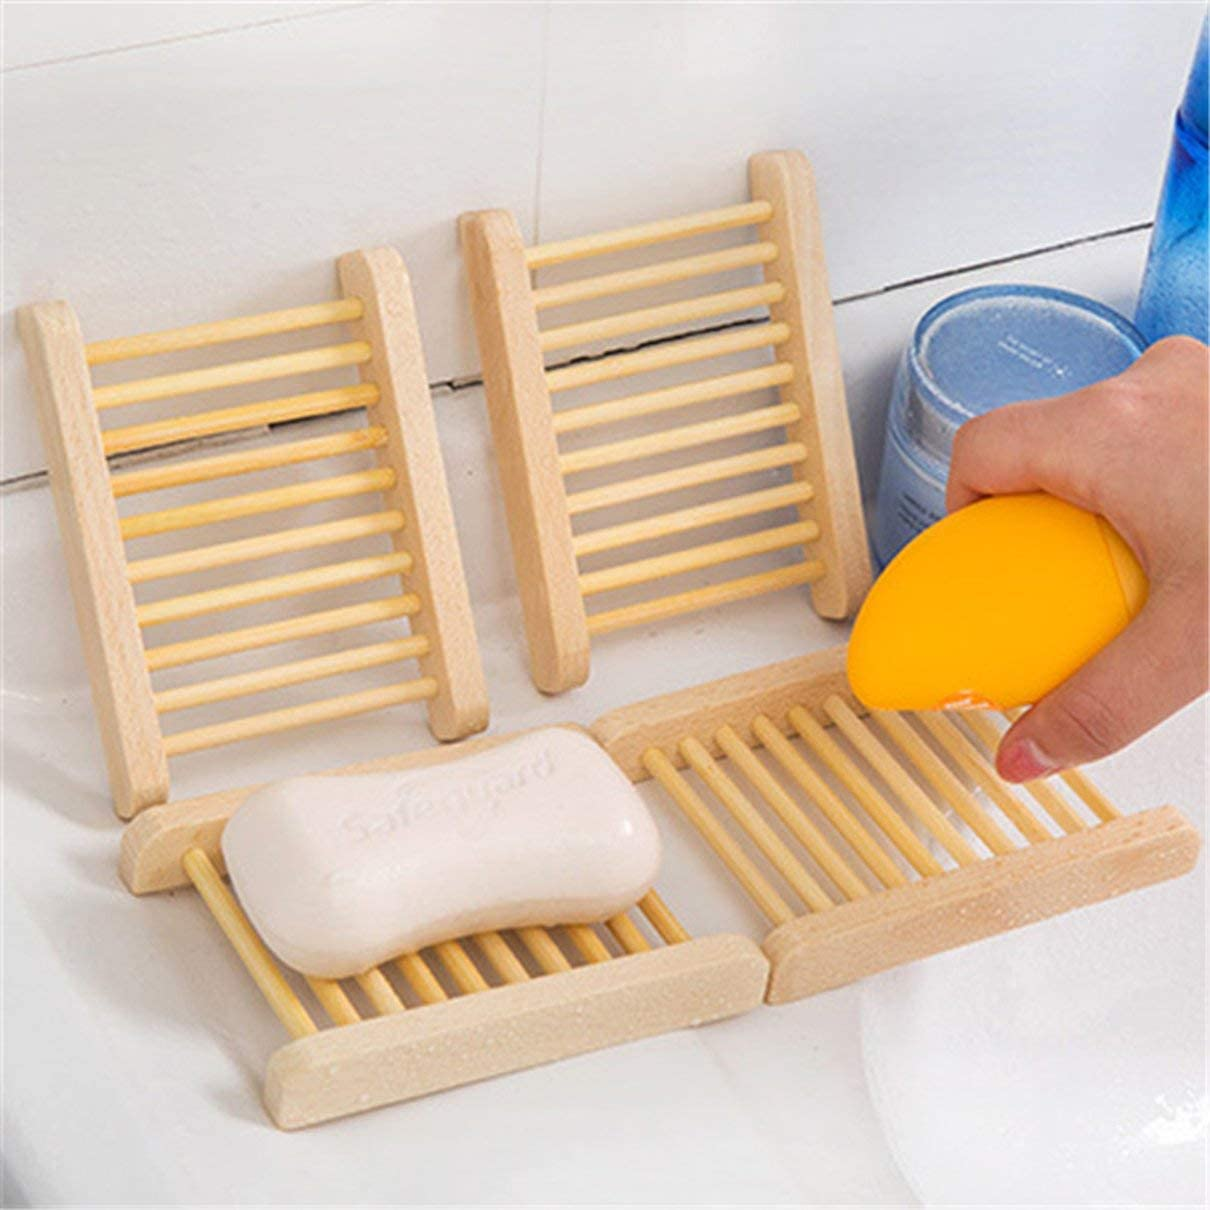 Creative Handmade Natural Wooden Soap Dish Box Container Drain Rack Soap Holder Home Bathroom Accessories